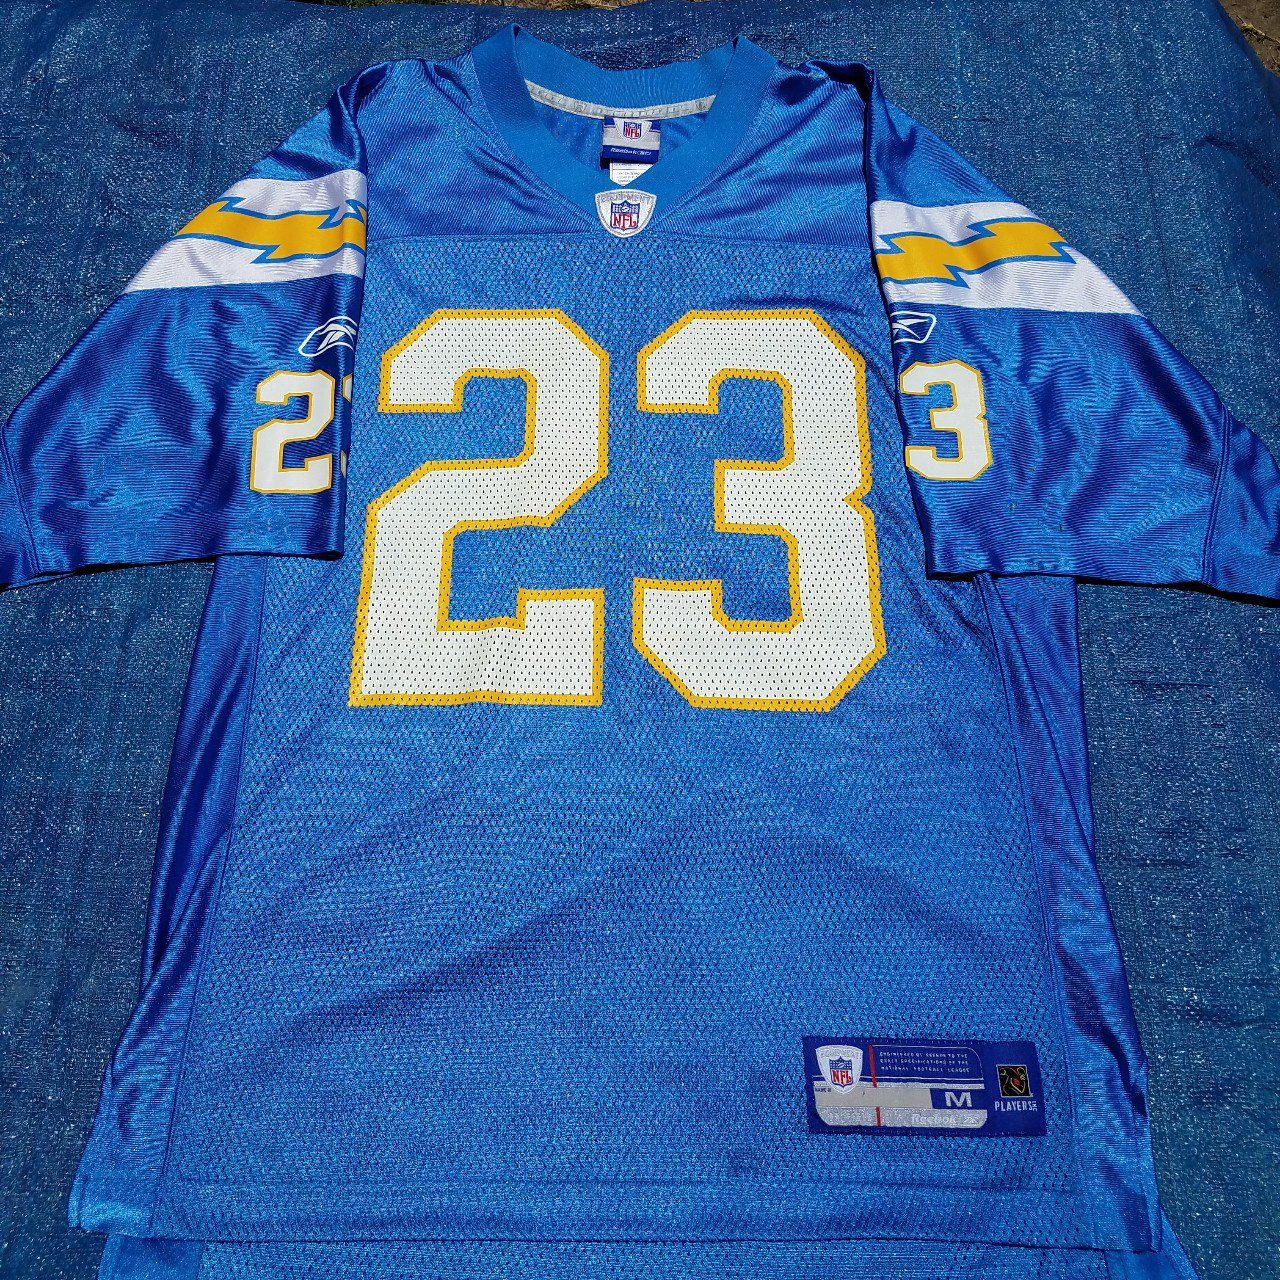 f00d01dab Adidas san diego chargers home jersey Doug Flutie 7 Can fit - Depop